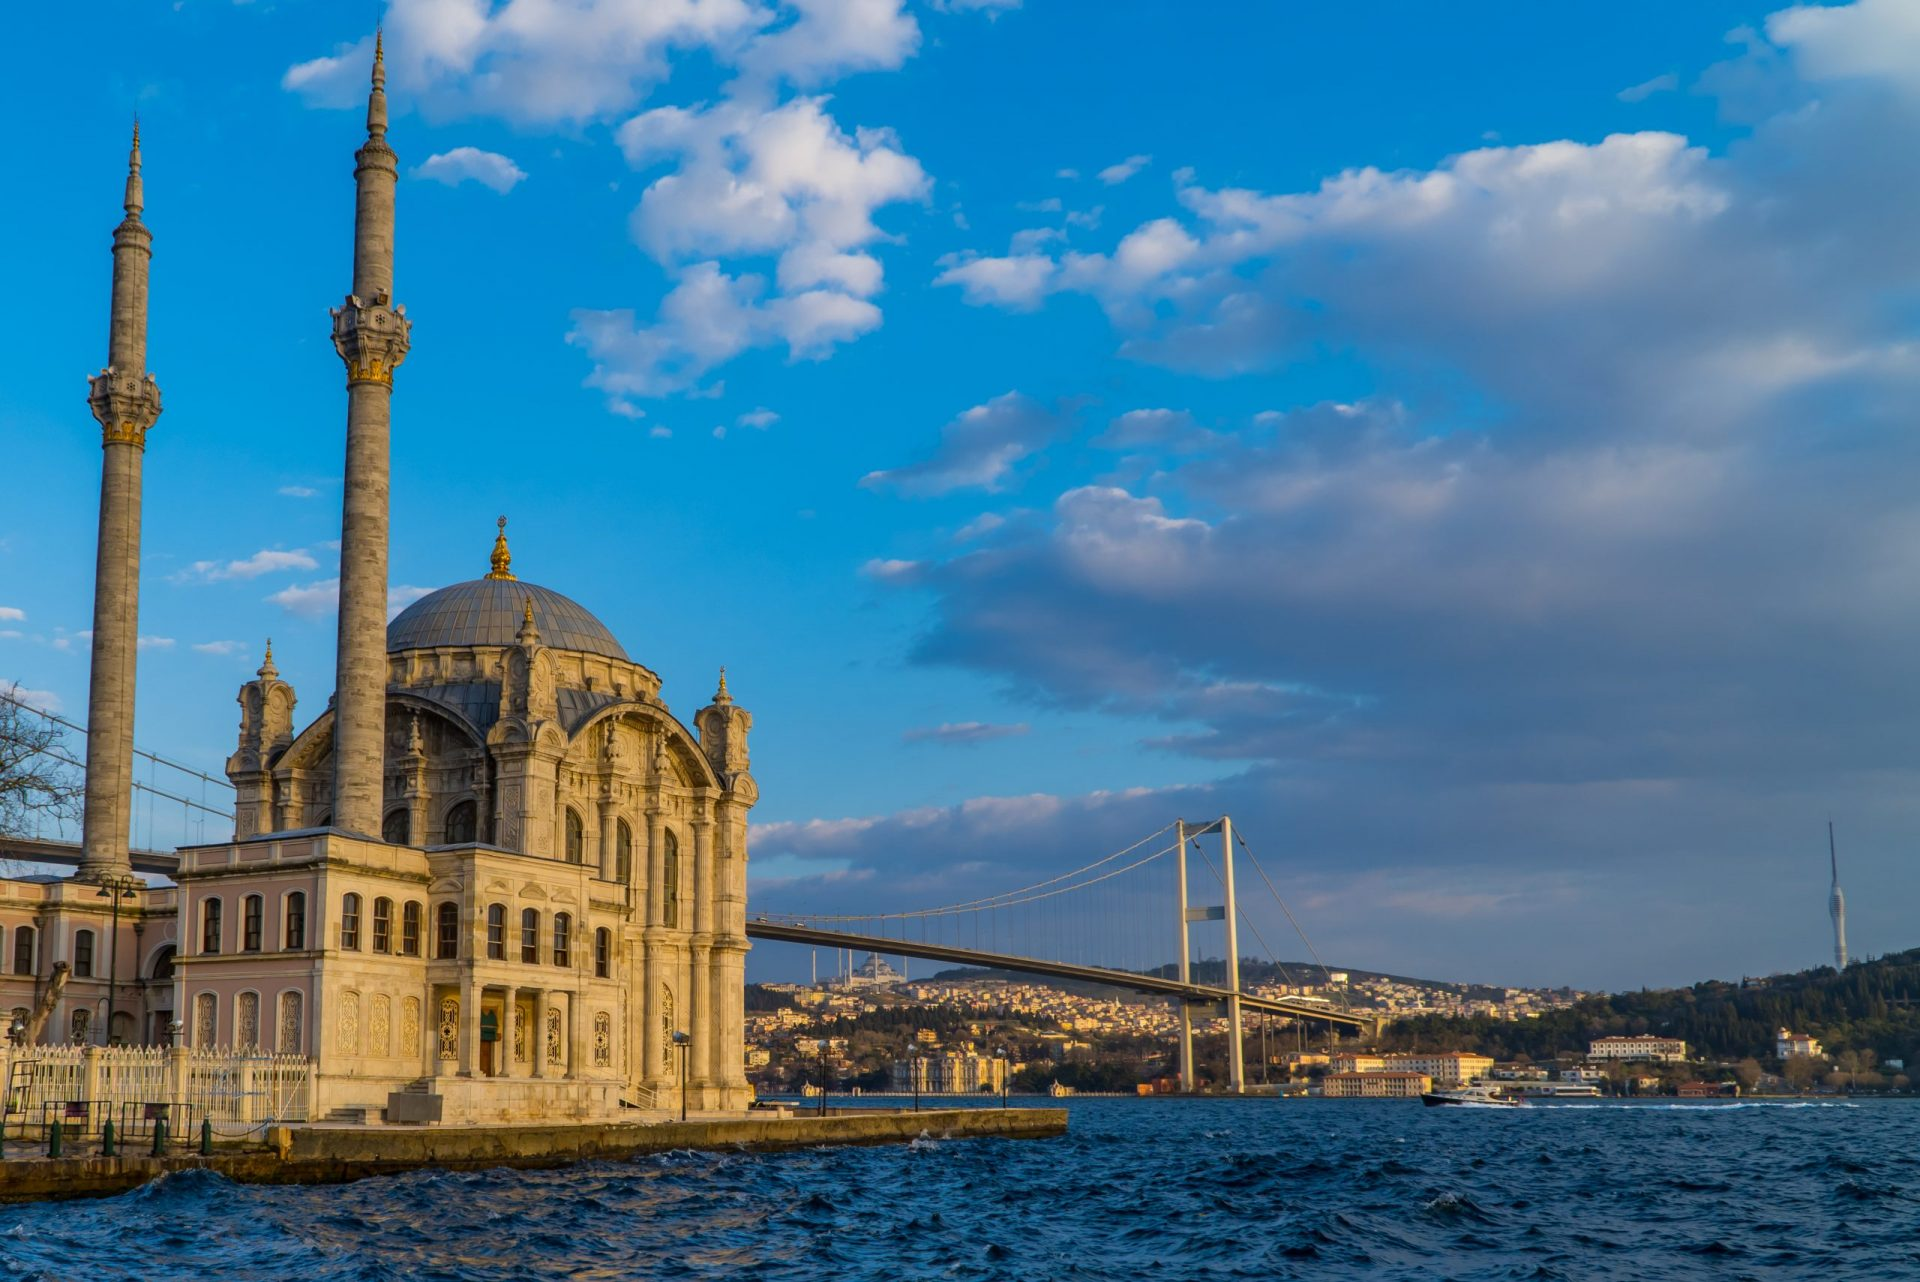 The Ultimate Guide to Turkey for Digital Nomads - The Ortakoy Mosque and the 15th July Martyrs Bridge on the Bosporus in Istanbul